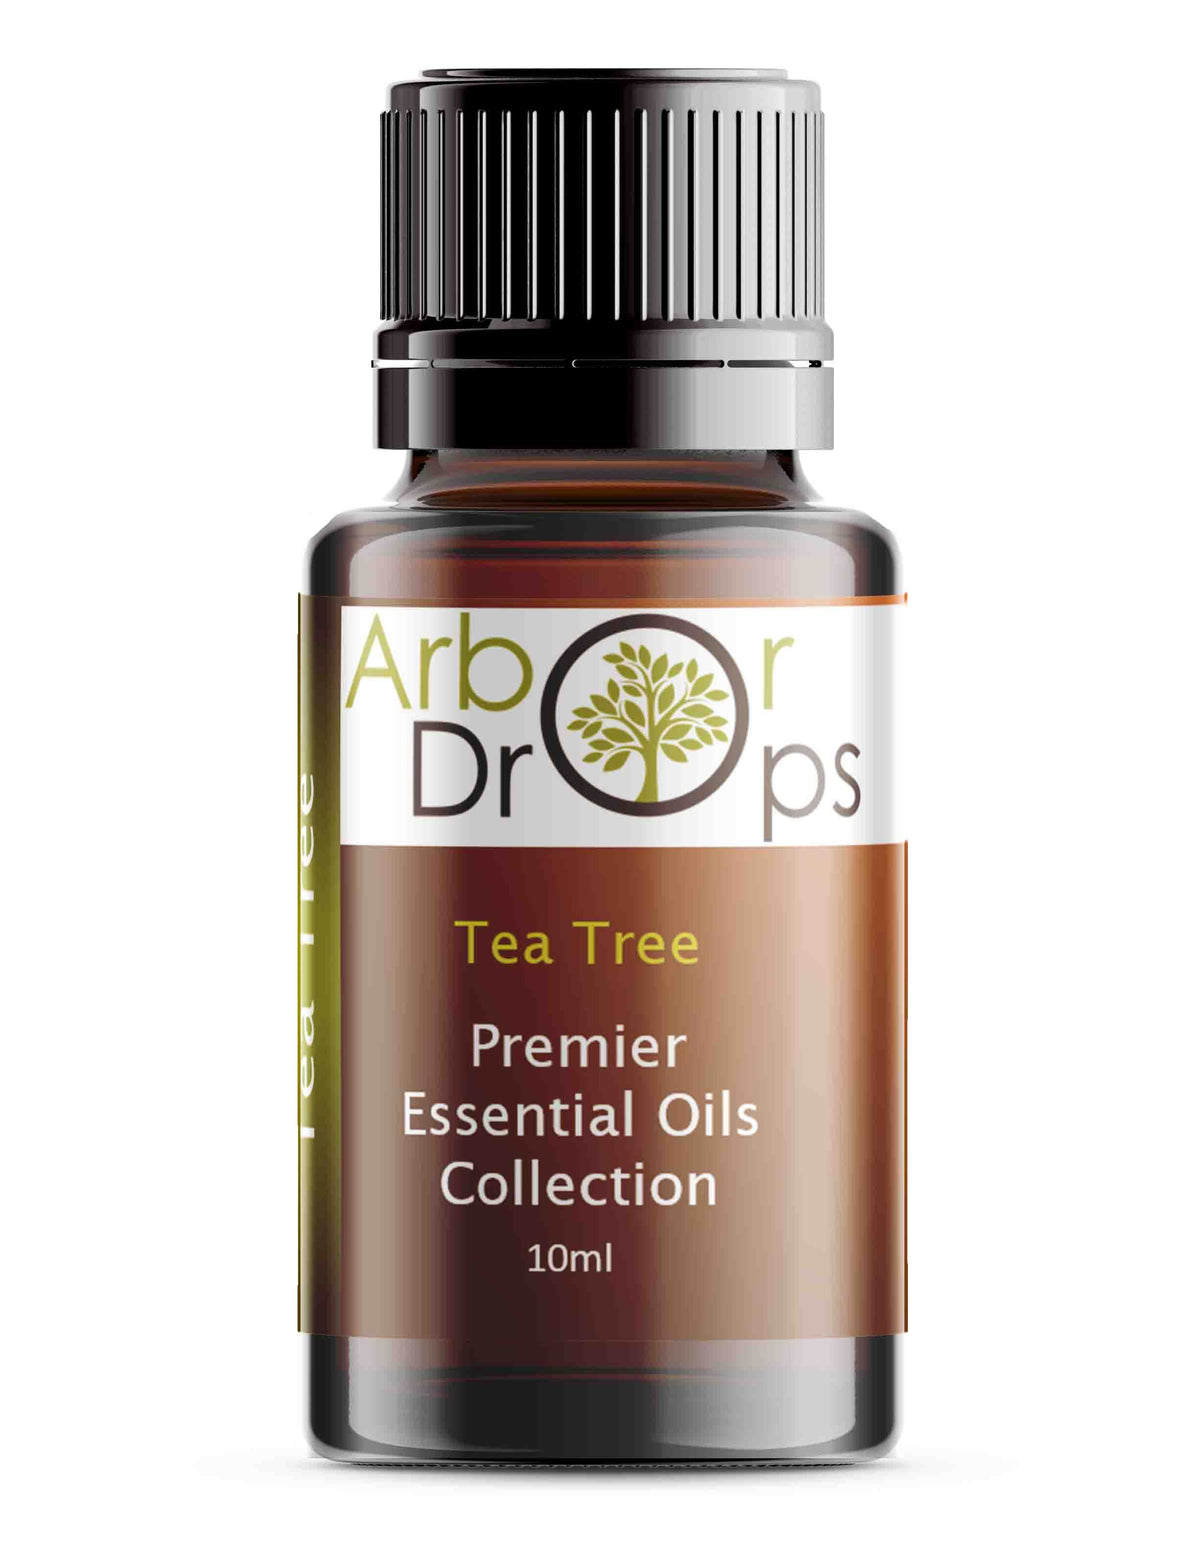 Tea Tree Oil - Organic (Australia) - Arbor Drops